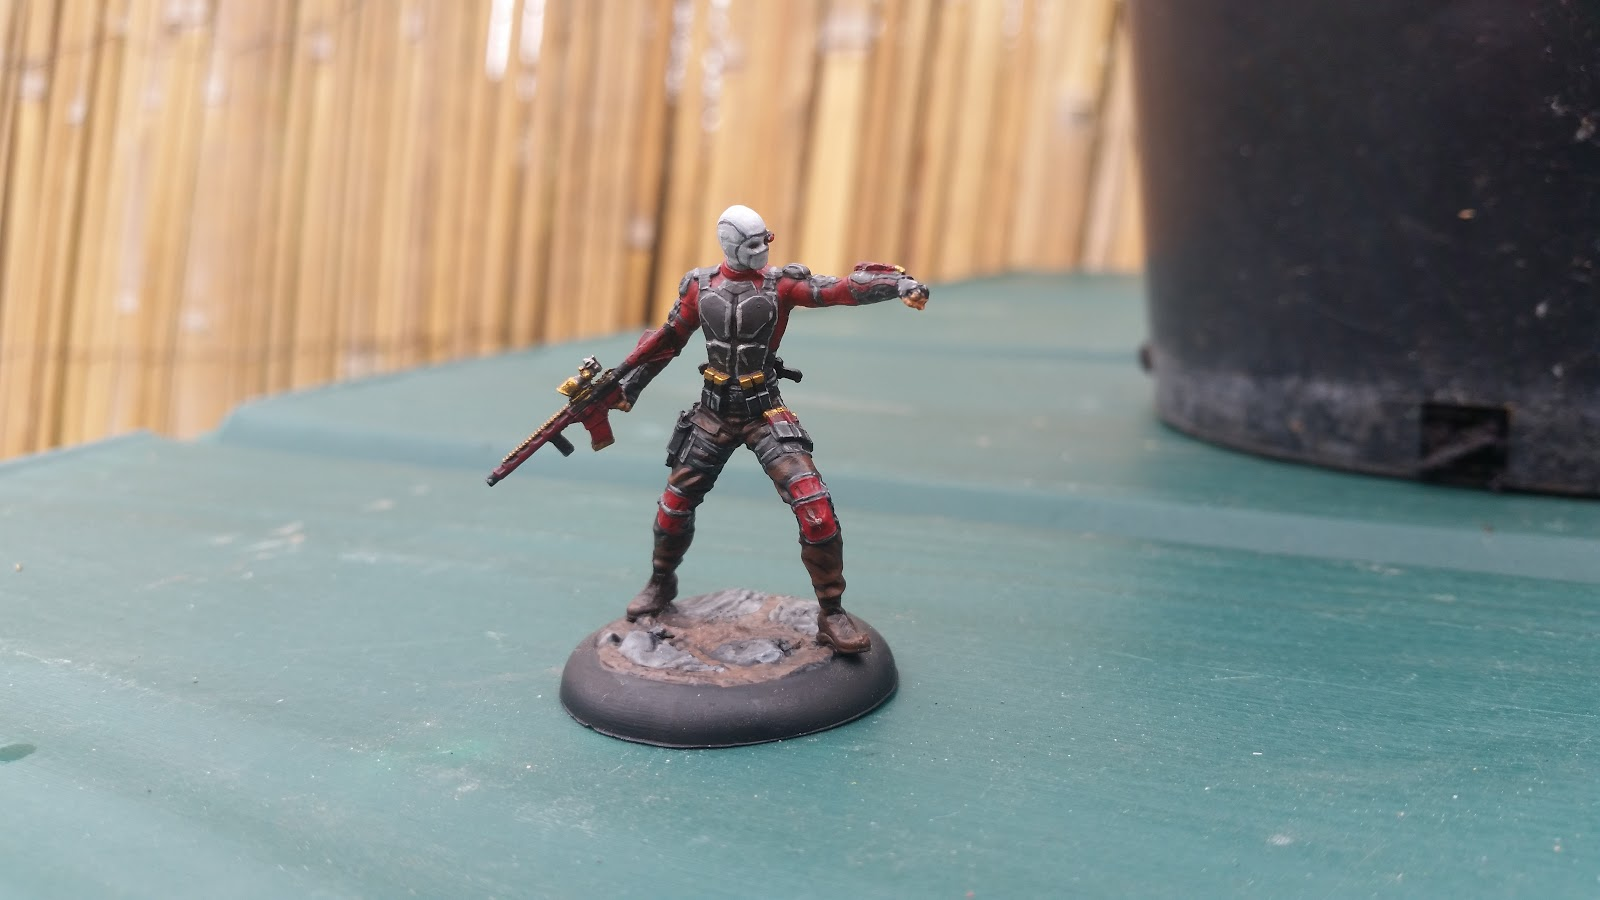 Brummie's Wargaming Blog: Batman Miniature Game Deadshot